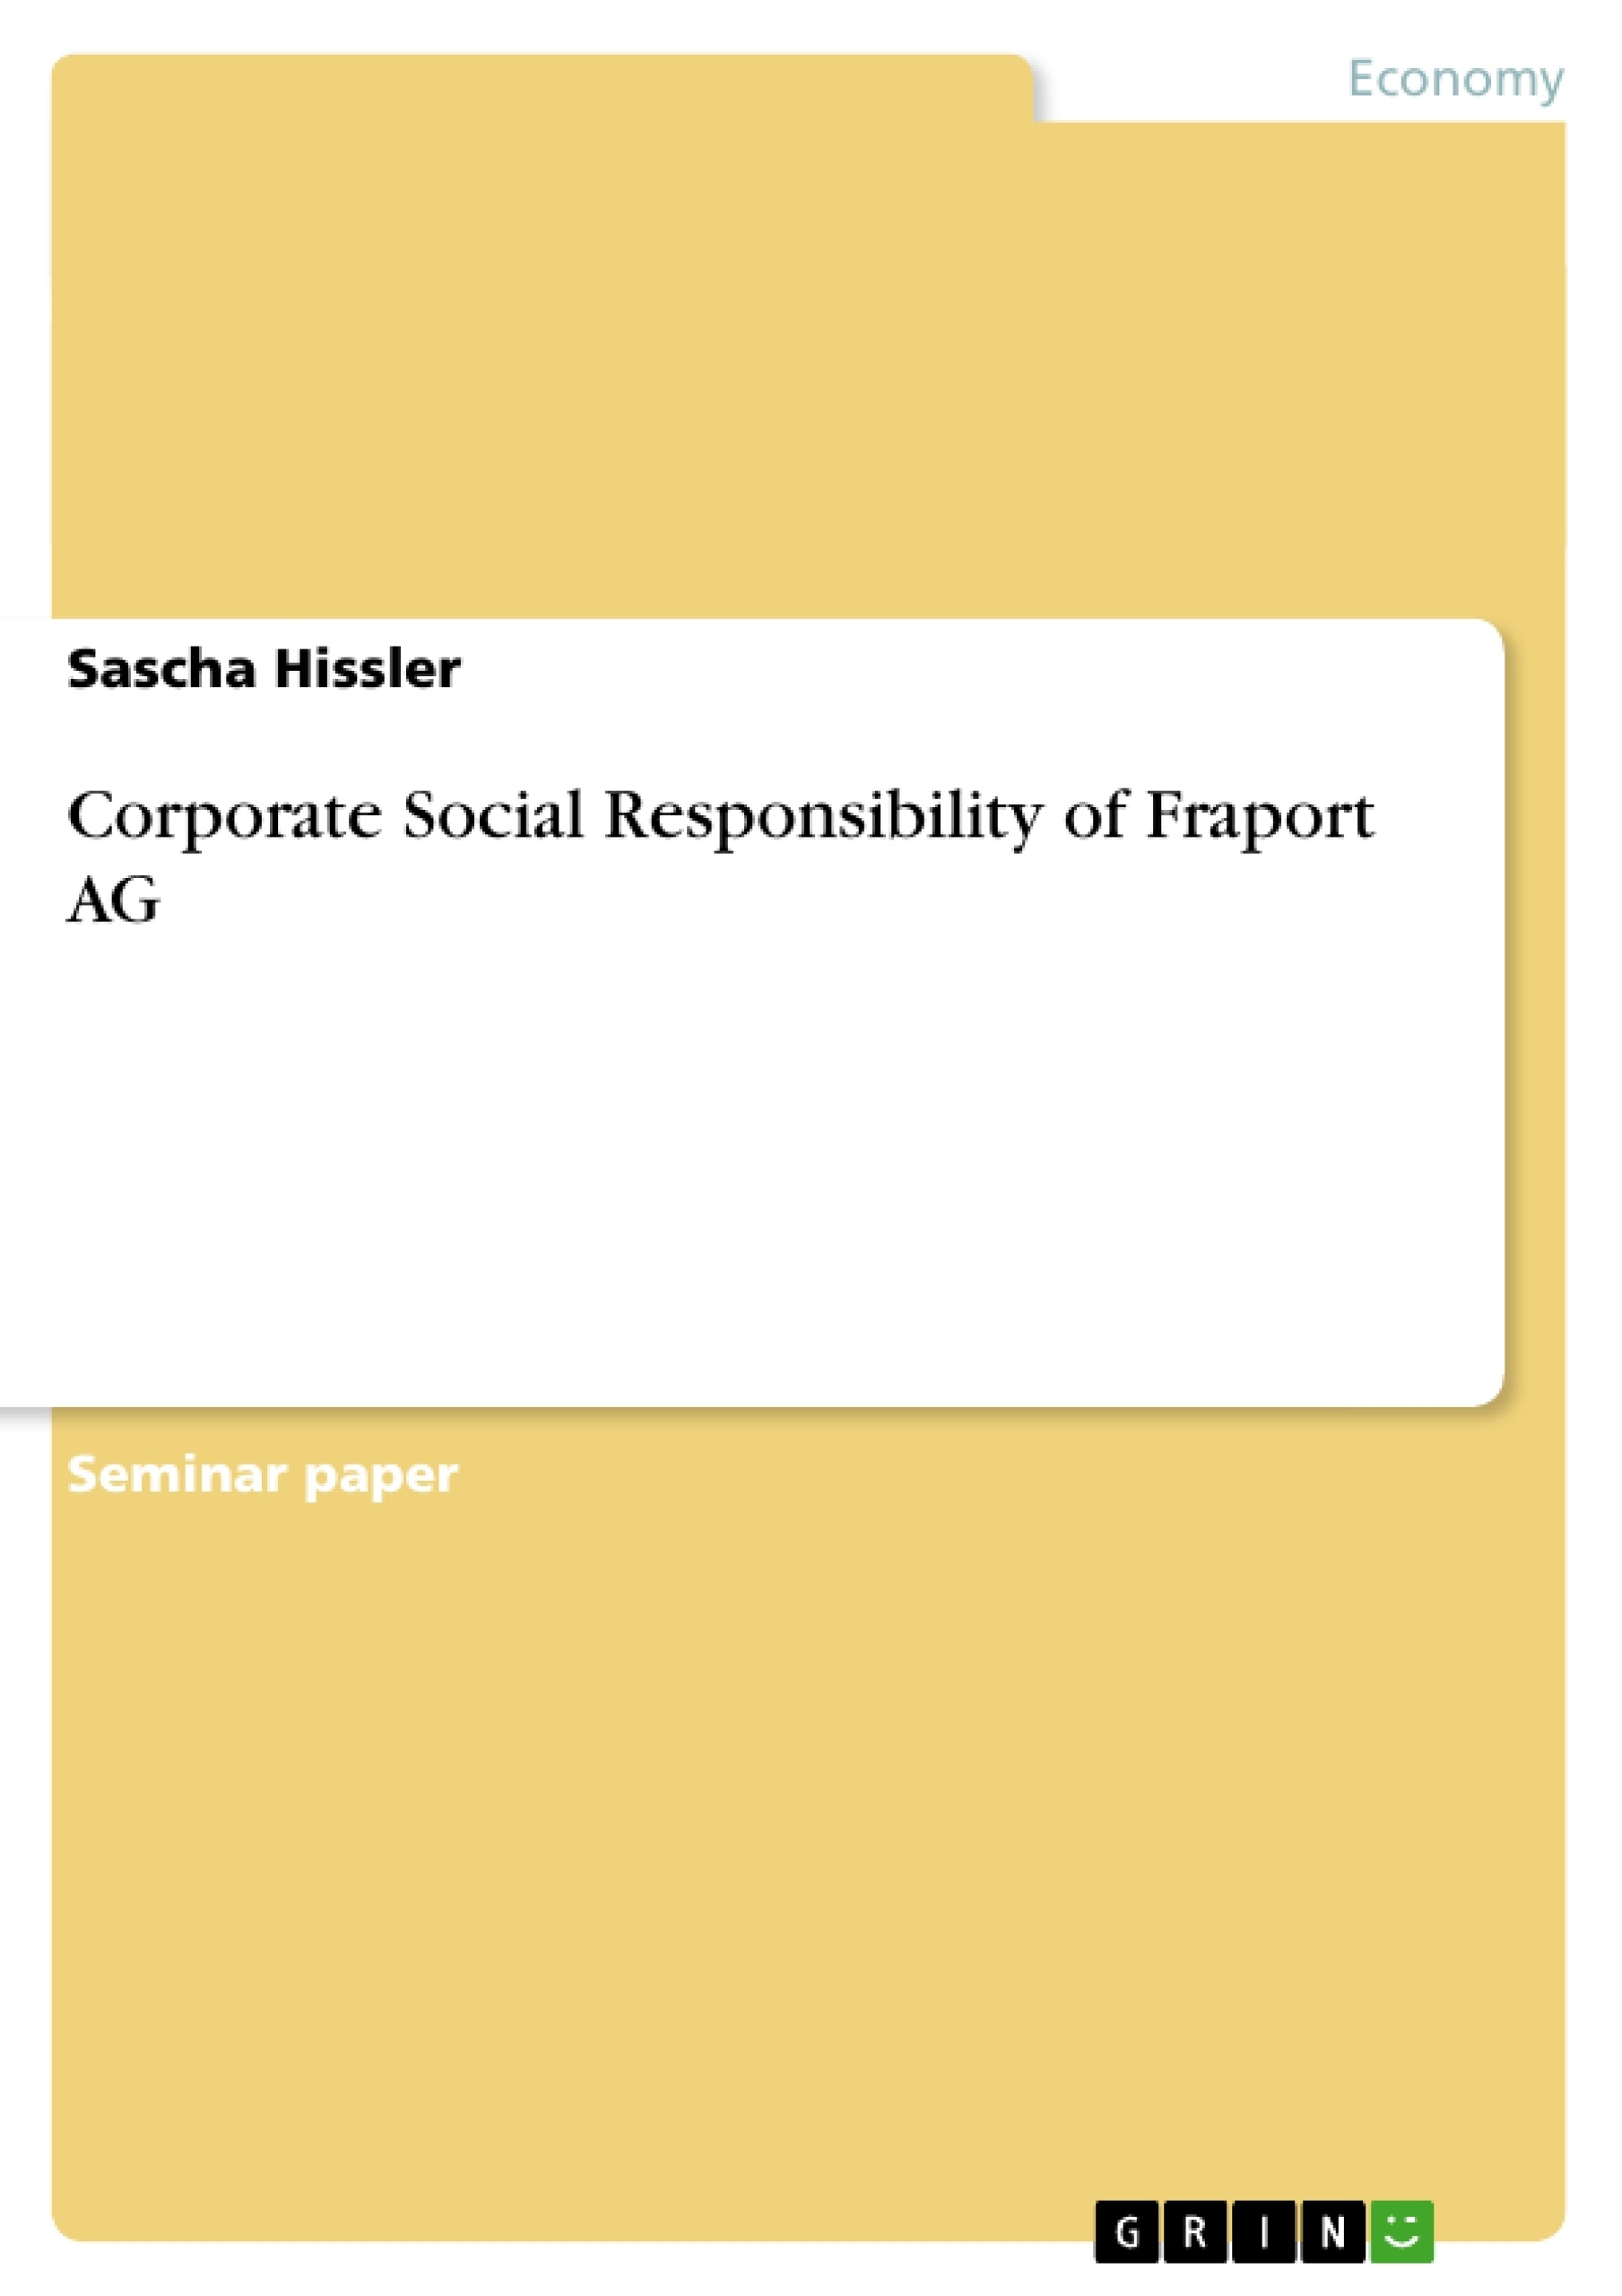 Title: Corporate Social Responsibility of Fraport AG